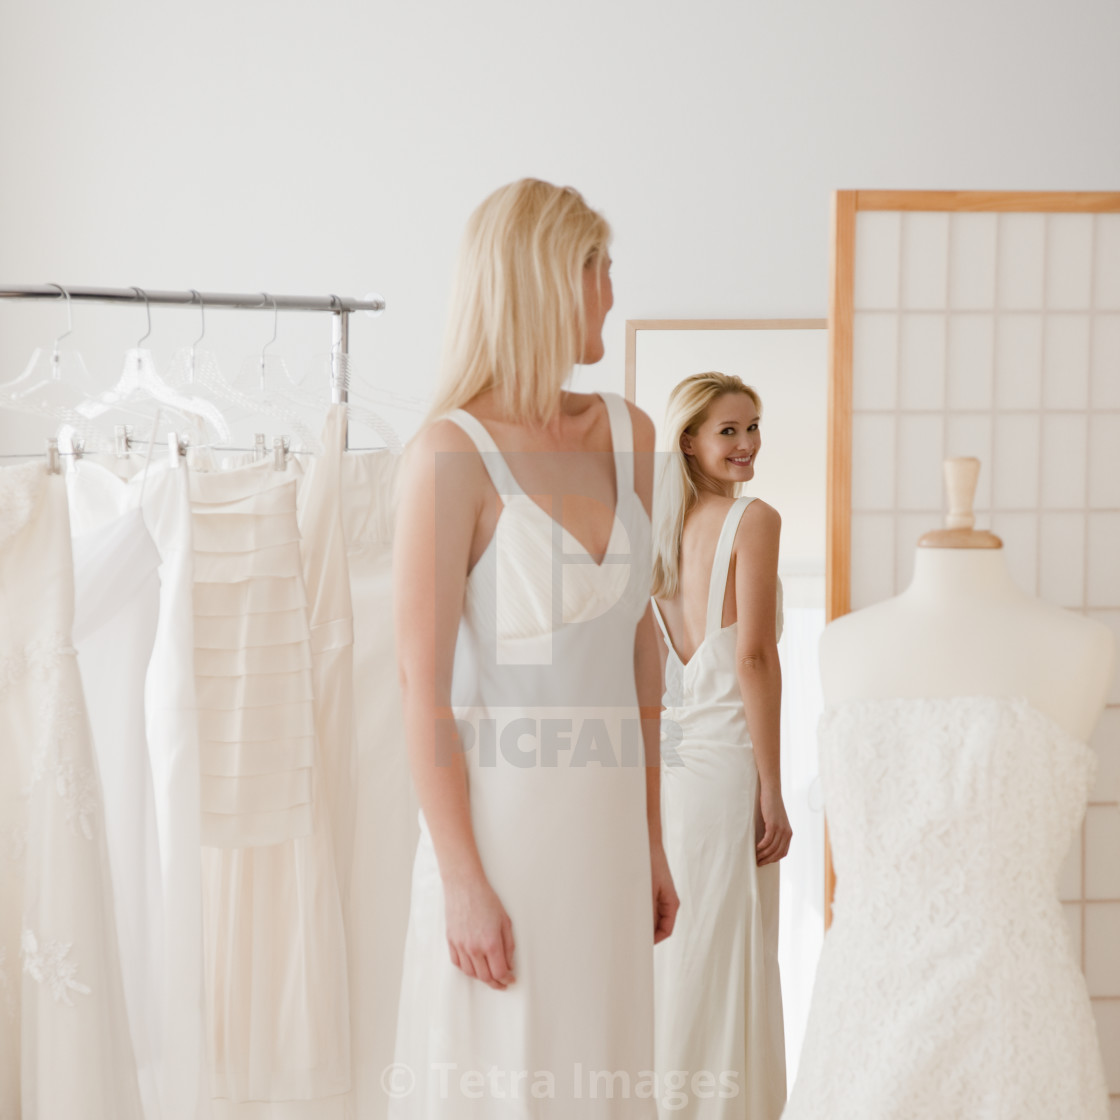 Young Woman Trying On Wedding Dress In Bridal Shop License